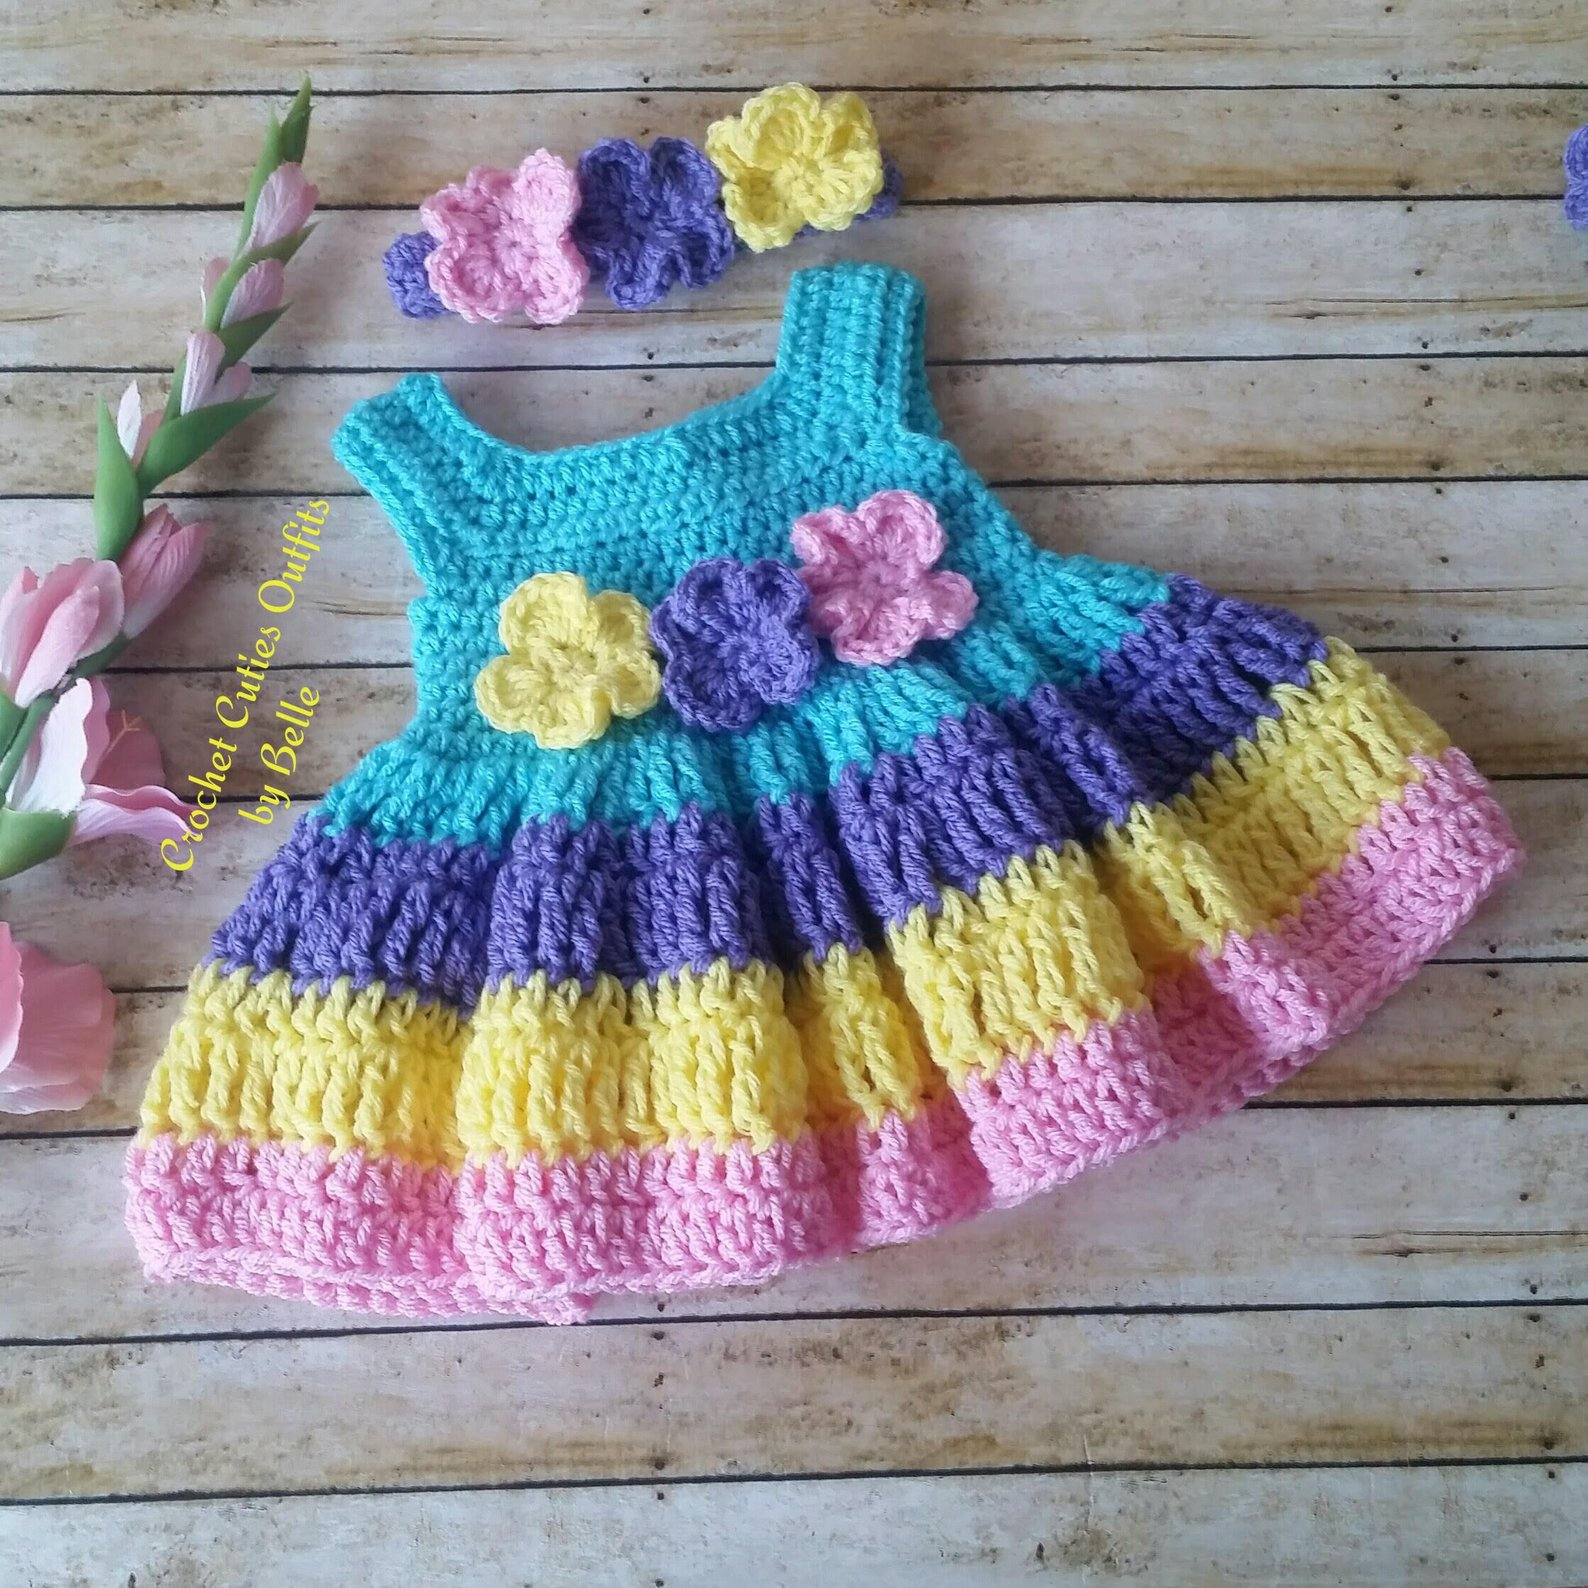 Crochet Baby Dress Ideas That You Will Love The Whoot